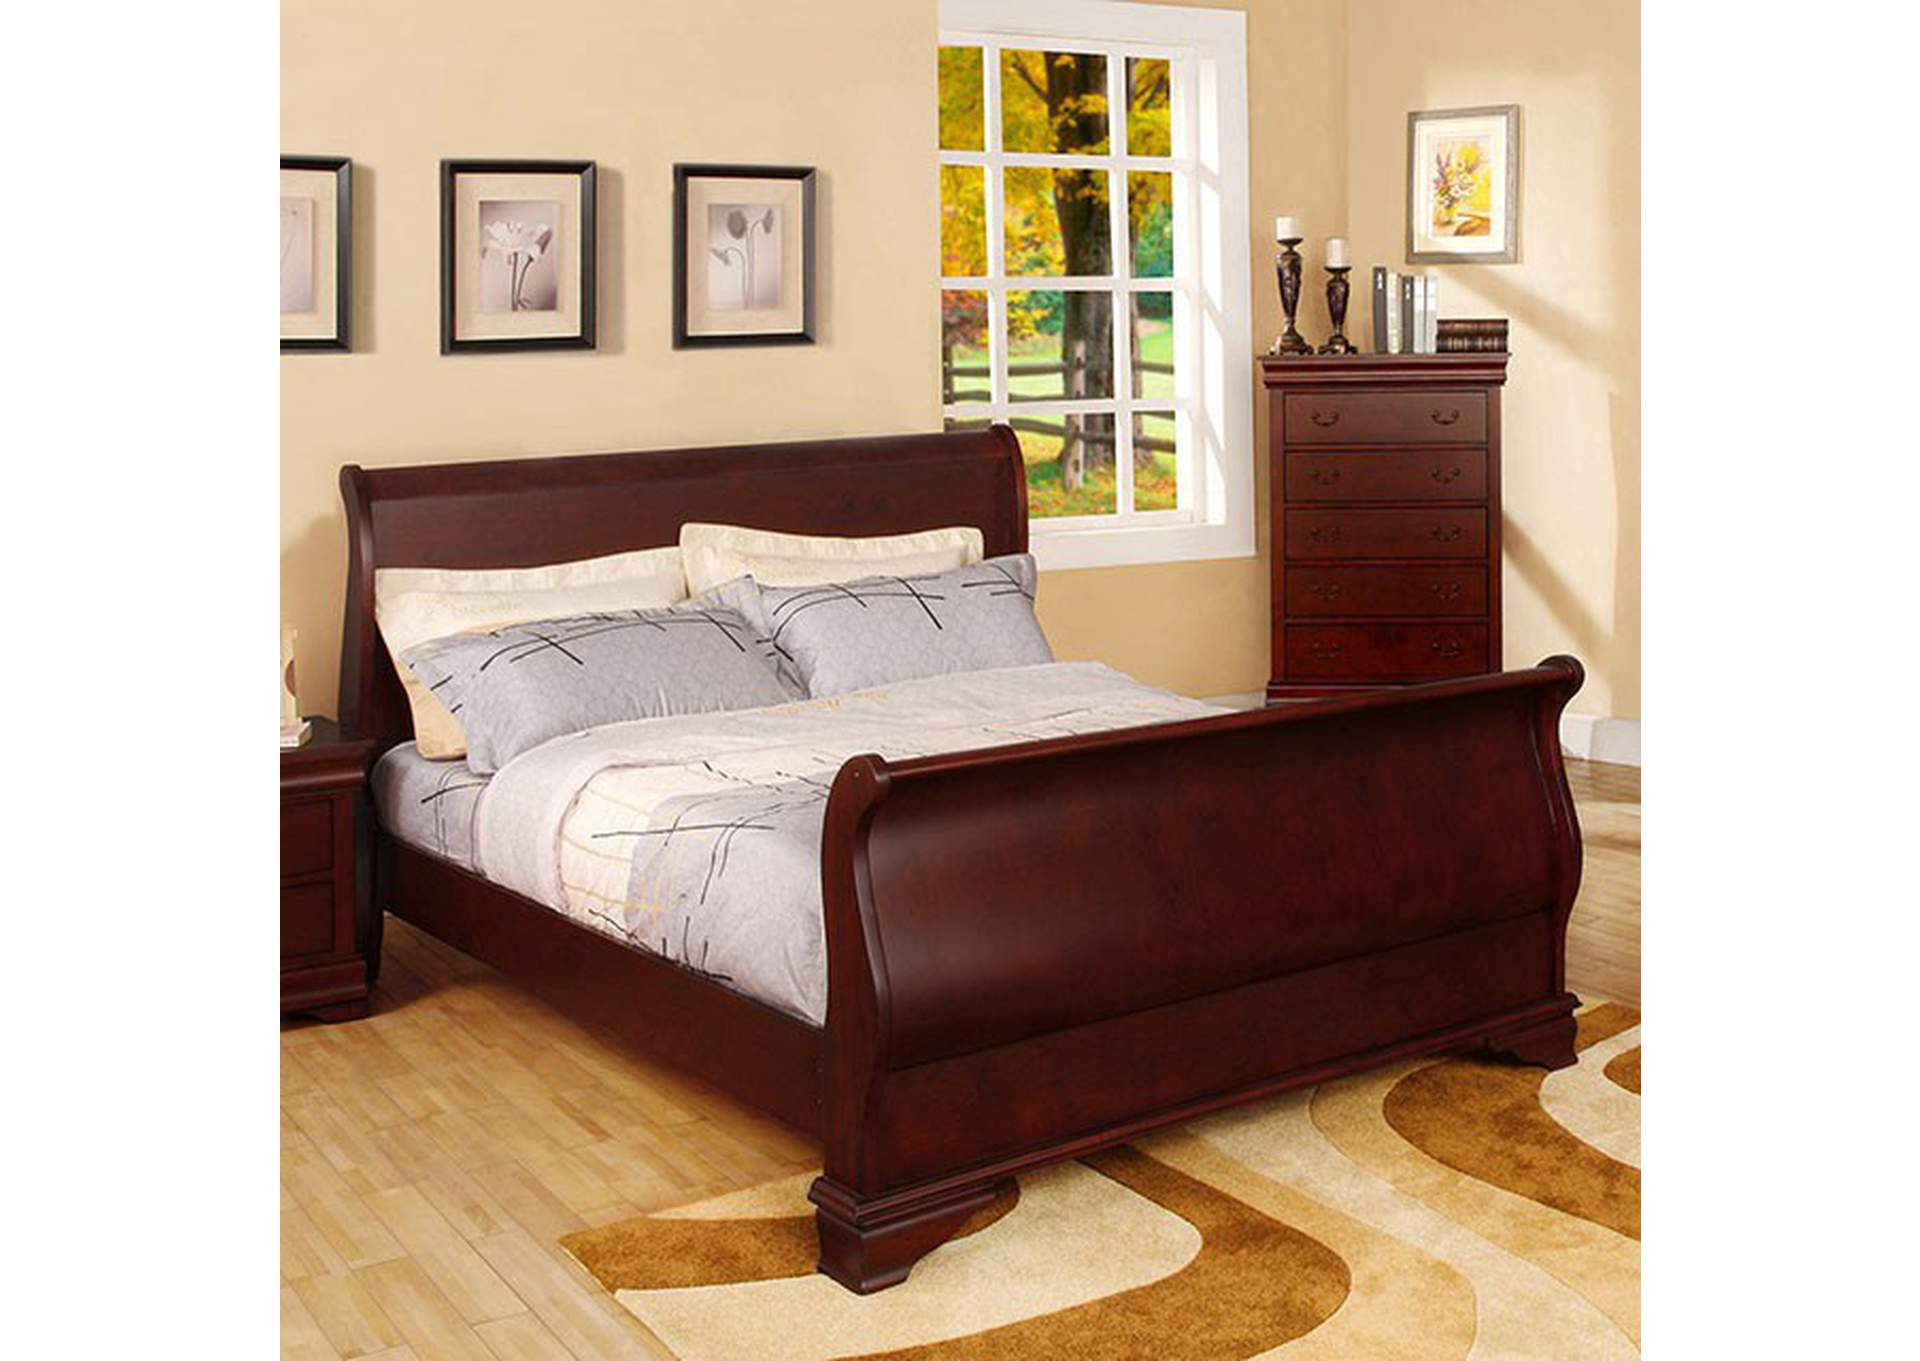 Laurelle Cherry Twin Sleigh Bed,Furniture of America